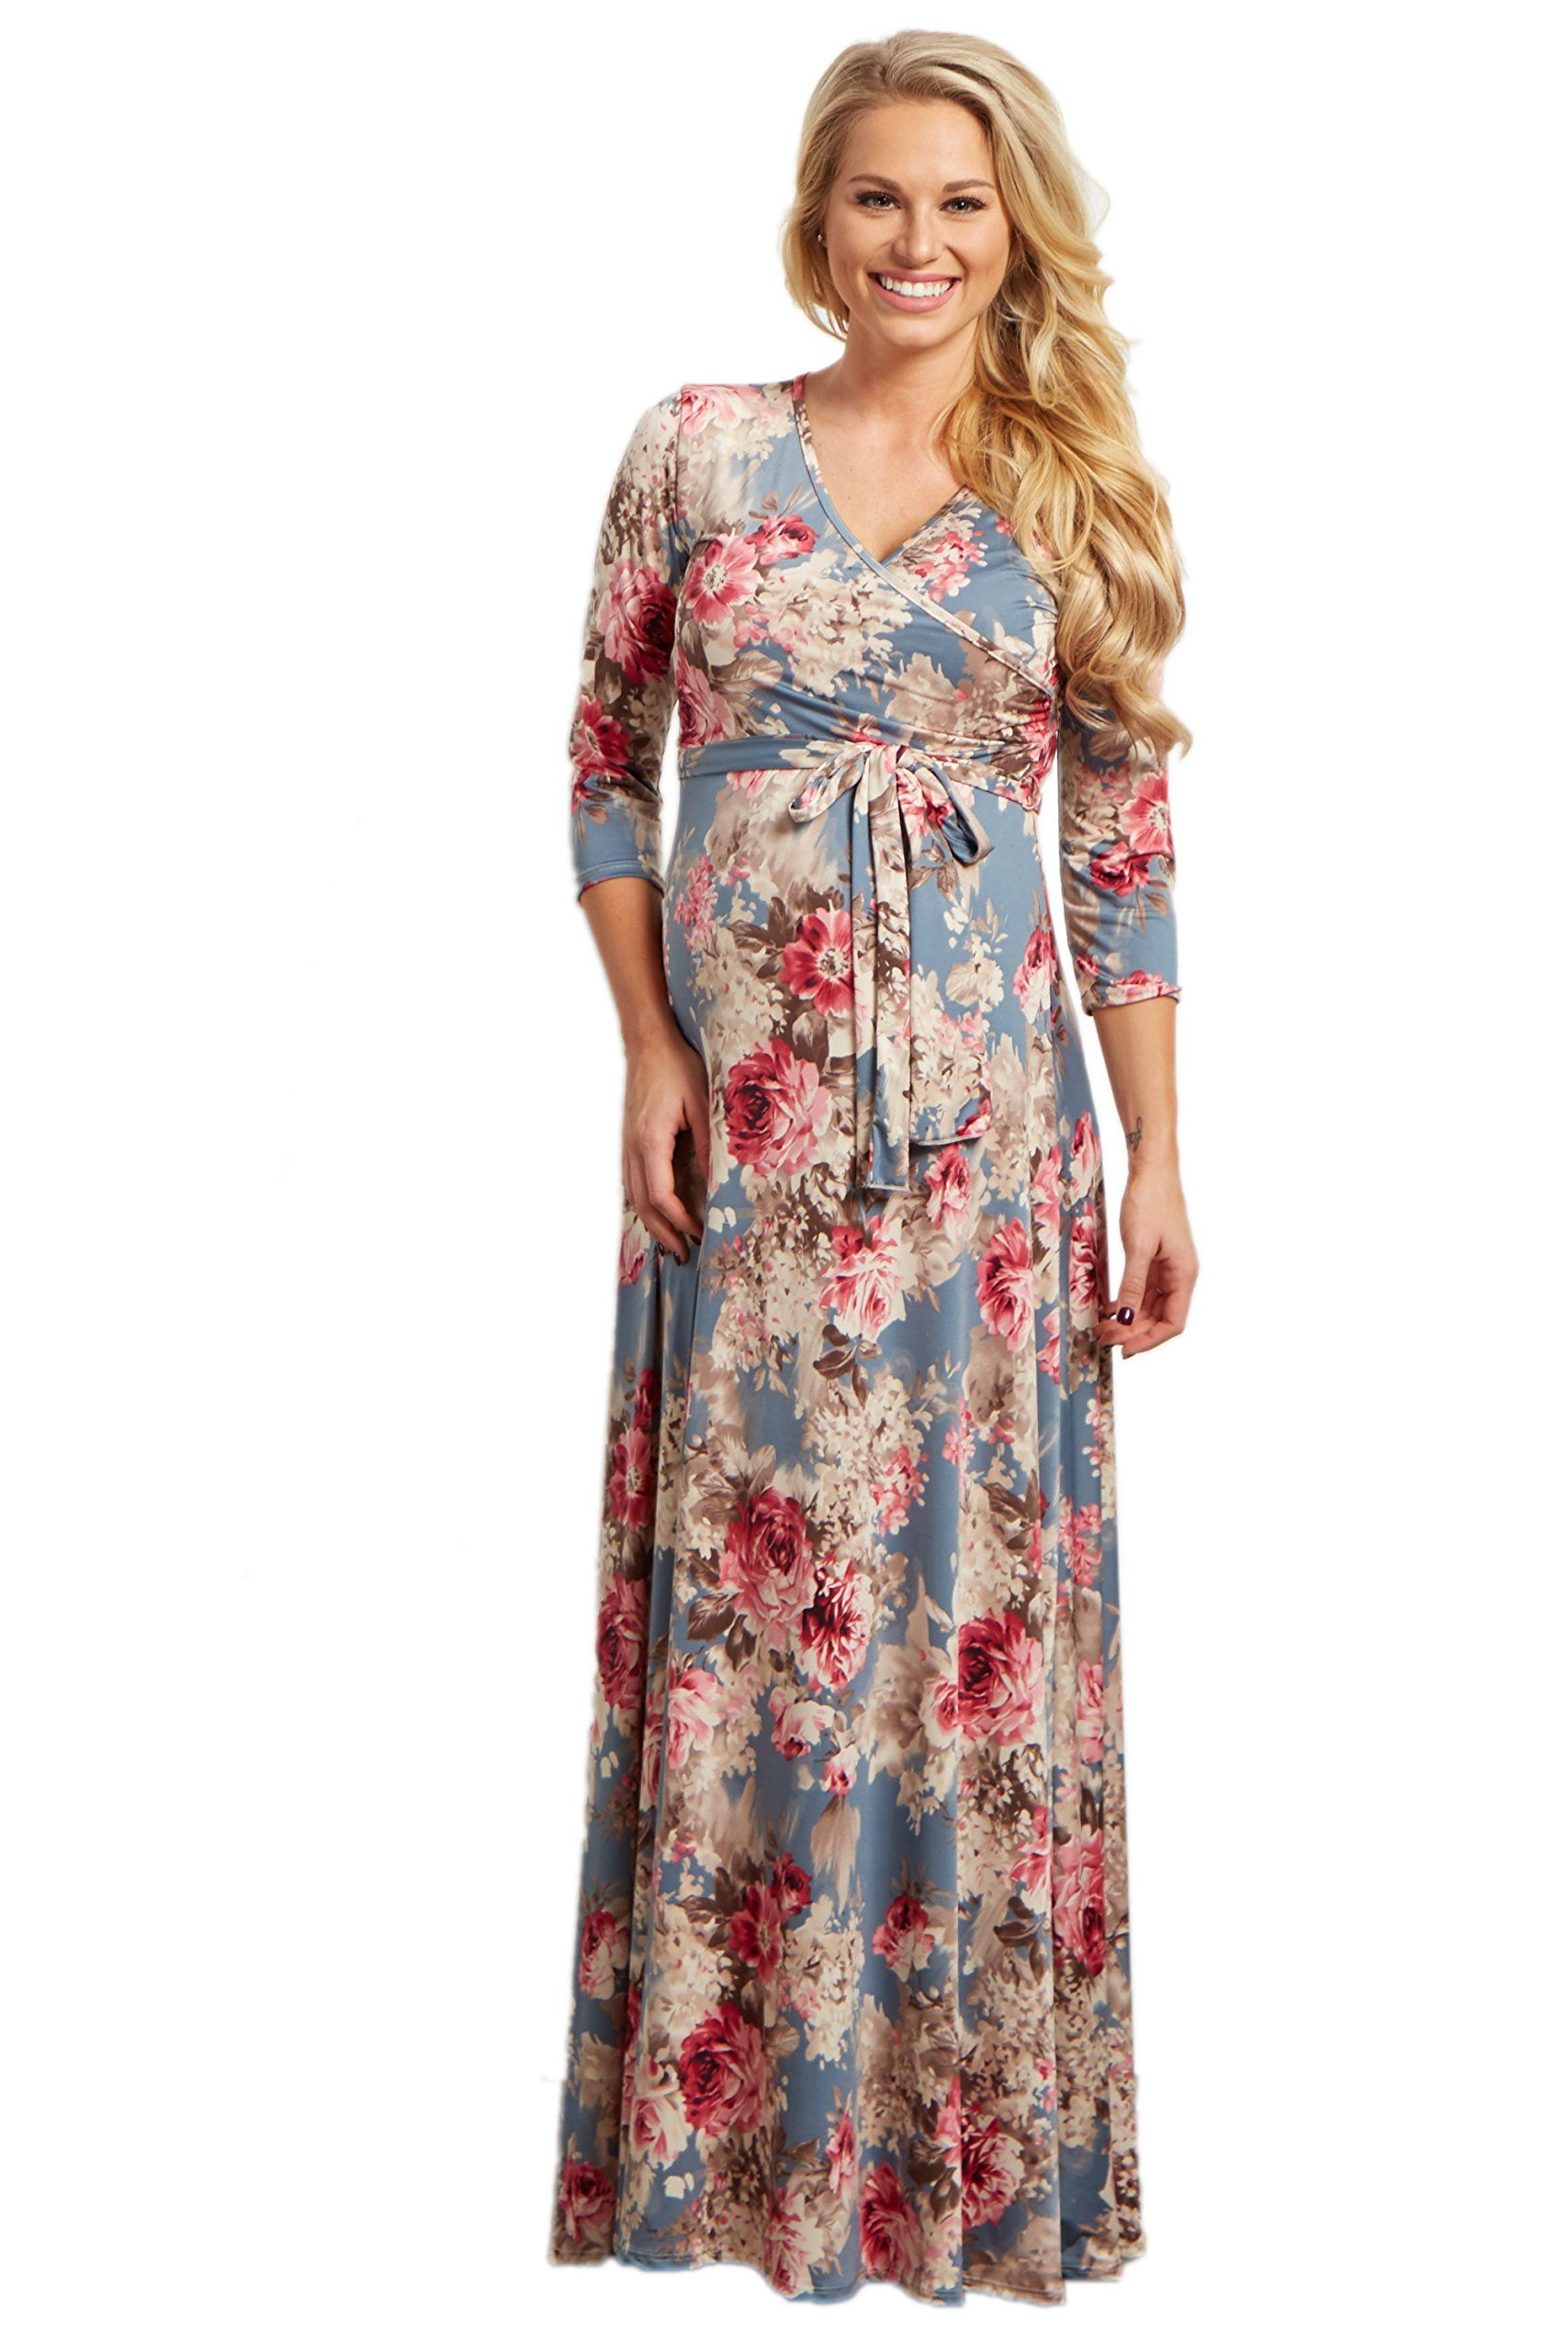 6510d9cc09dbf Women Maternity Clothes - PinkBlush Maternity Light Blue Floral Sash Tie  Maxi Dress Large >>> Learn more by seeing the photo web link.